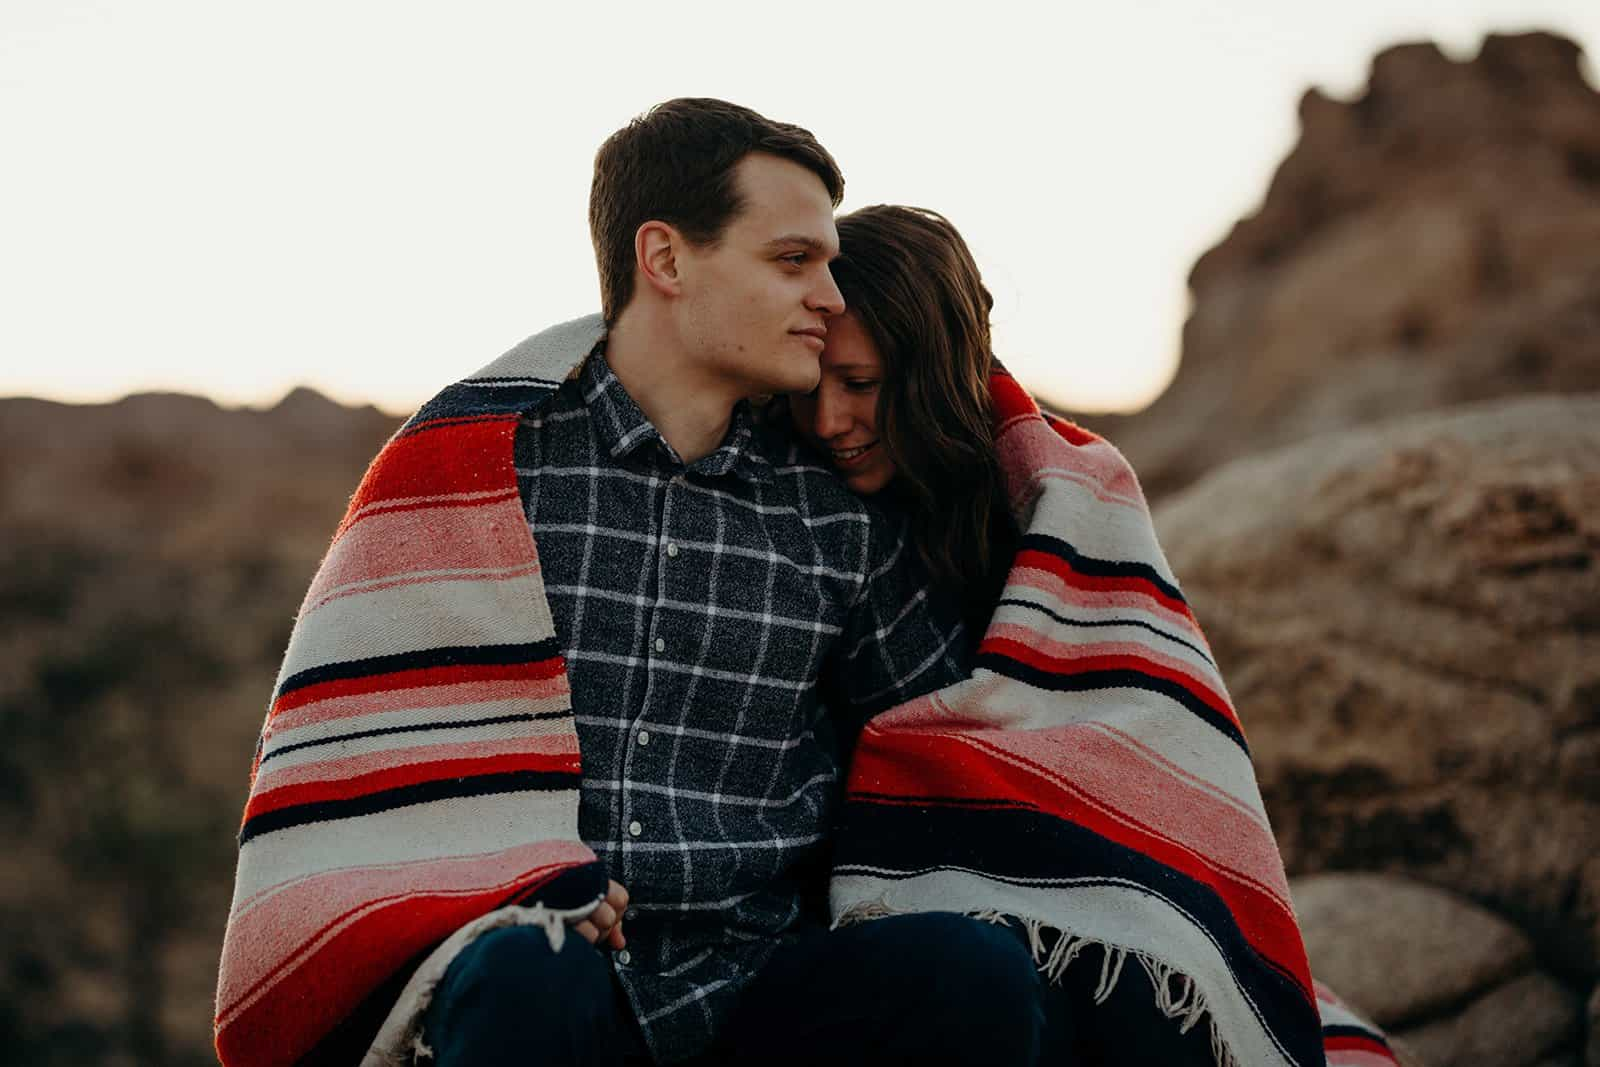 Couple cuddling and wrapped in blanket on Joshua Tree Trip sunrise